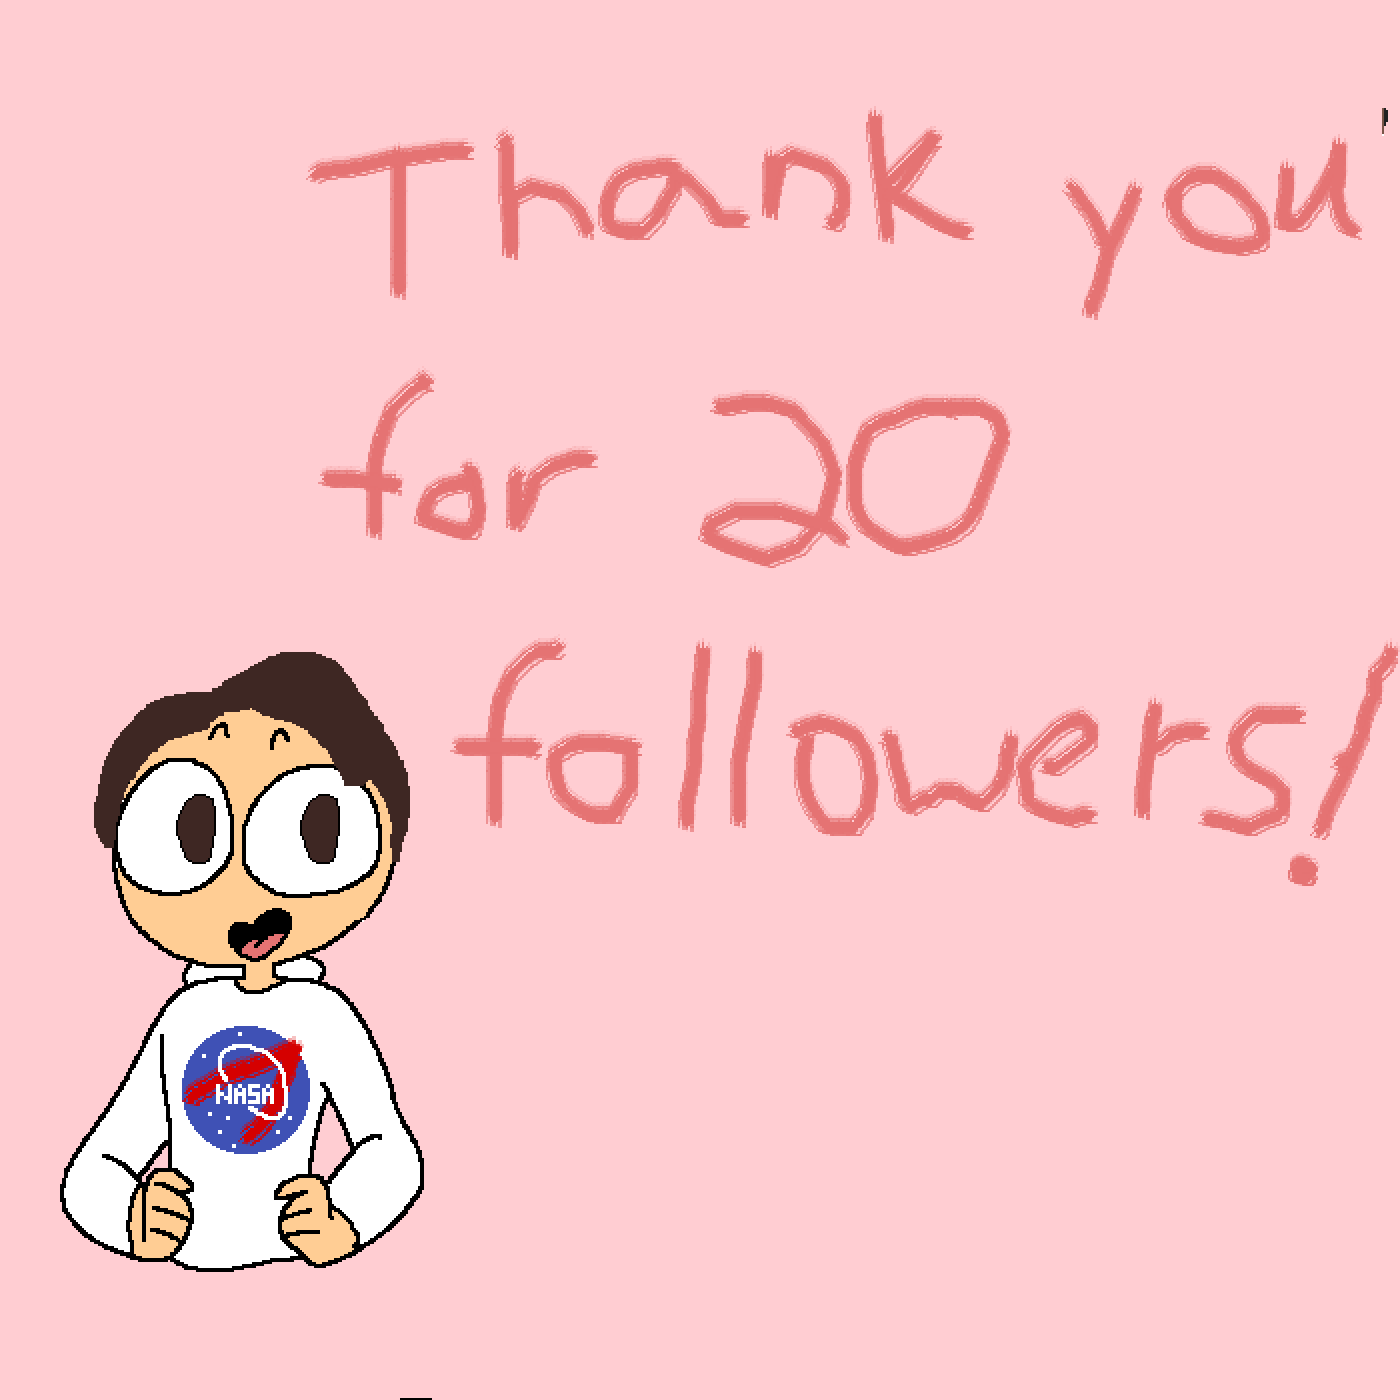 20 Followers! by DragonHunter11